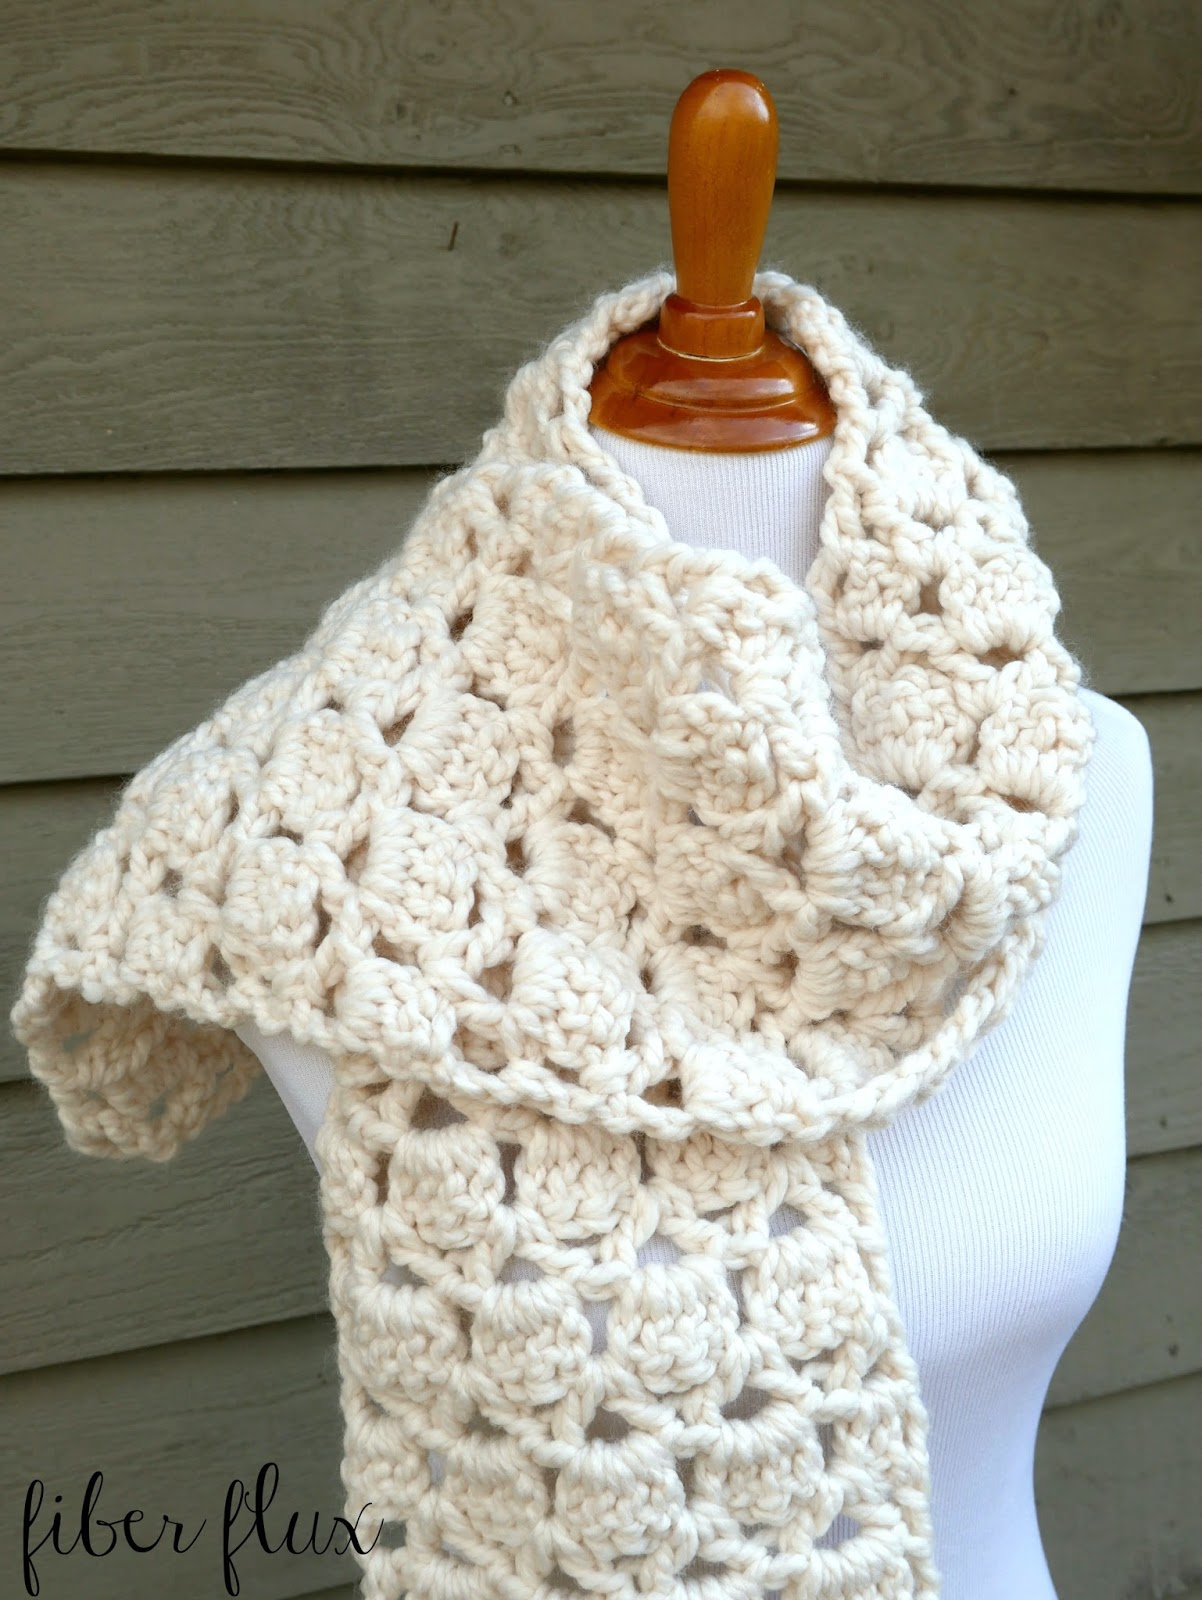 Crochet Shawl Patterns With Bulky Yarn : Fiber Flux: Free Crochet Pattern...Sugar Cookie Scarf!